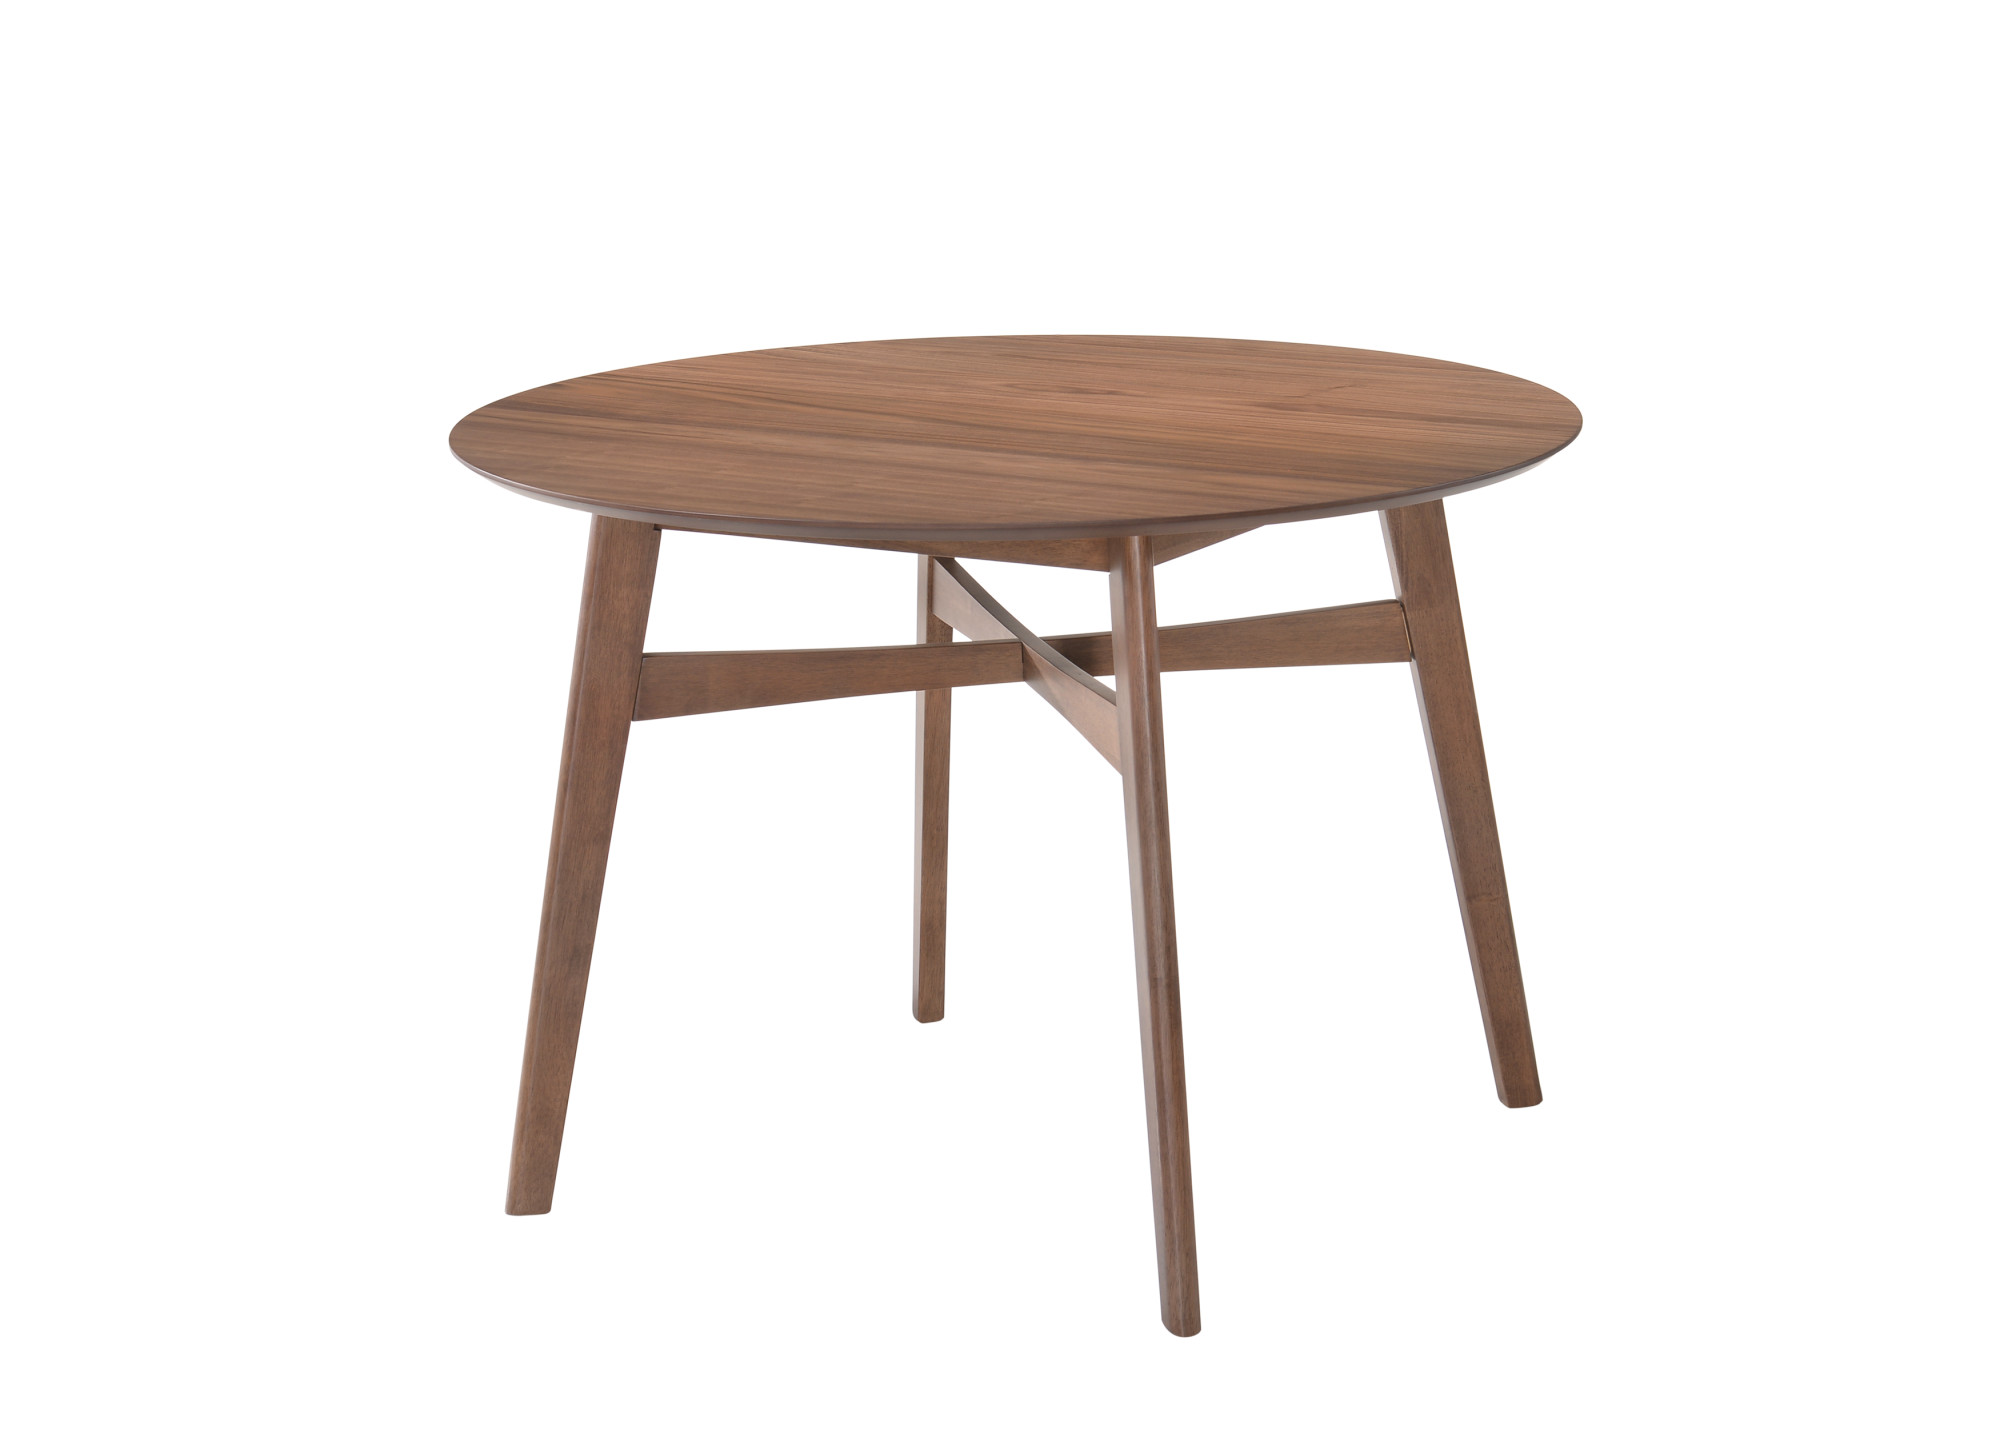 "Emerald Home Simplicity Round Dining Table 42"" Walnut D550-15 by Emerald Home Furnishings, LLC"